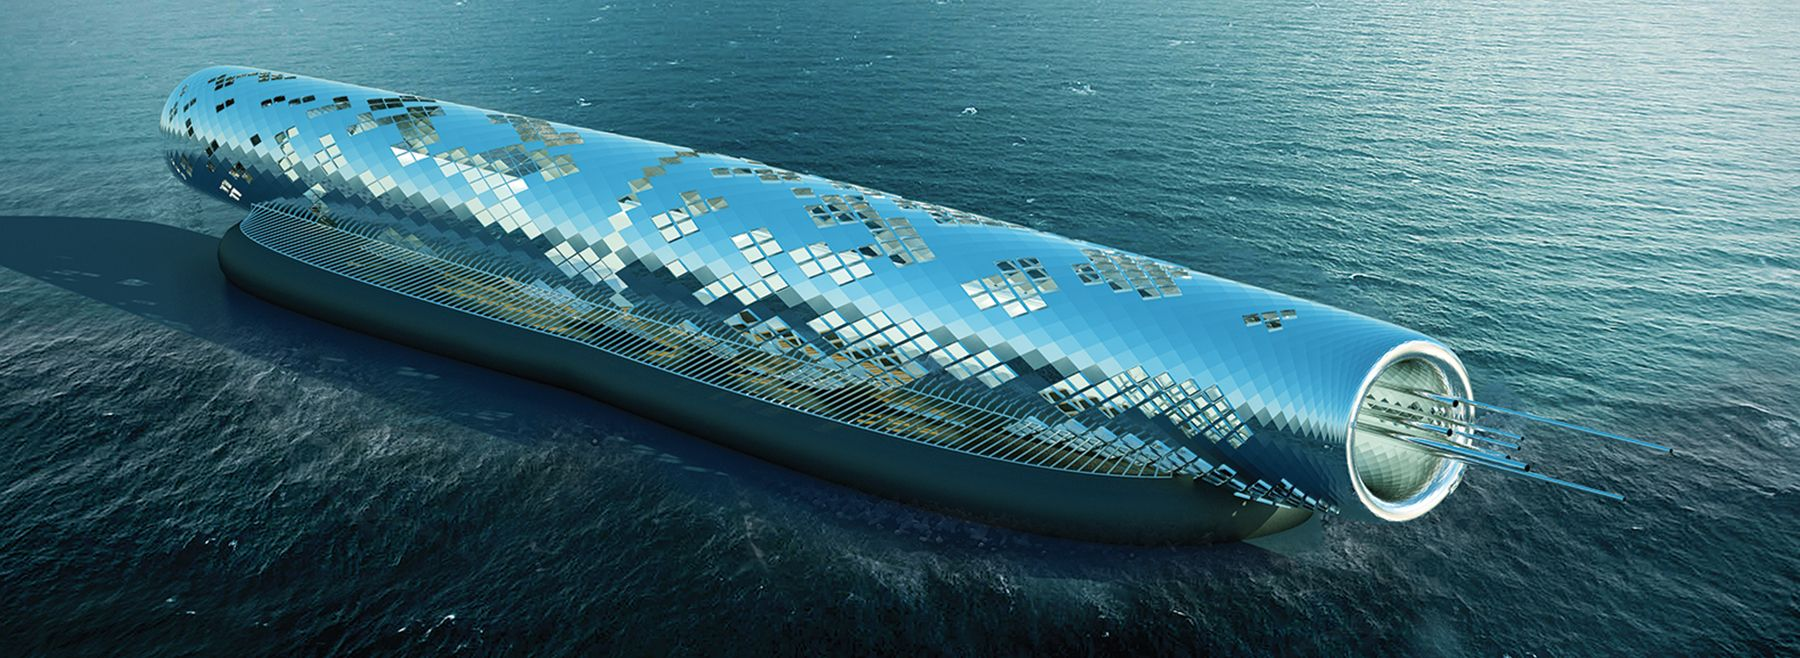 solar-powered 'pipe' sculpture generates 4.5 billion liters of drinkable water from the ocean